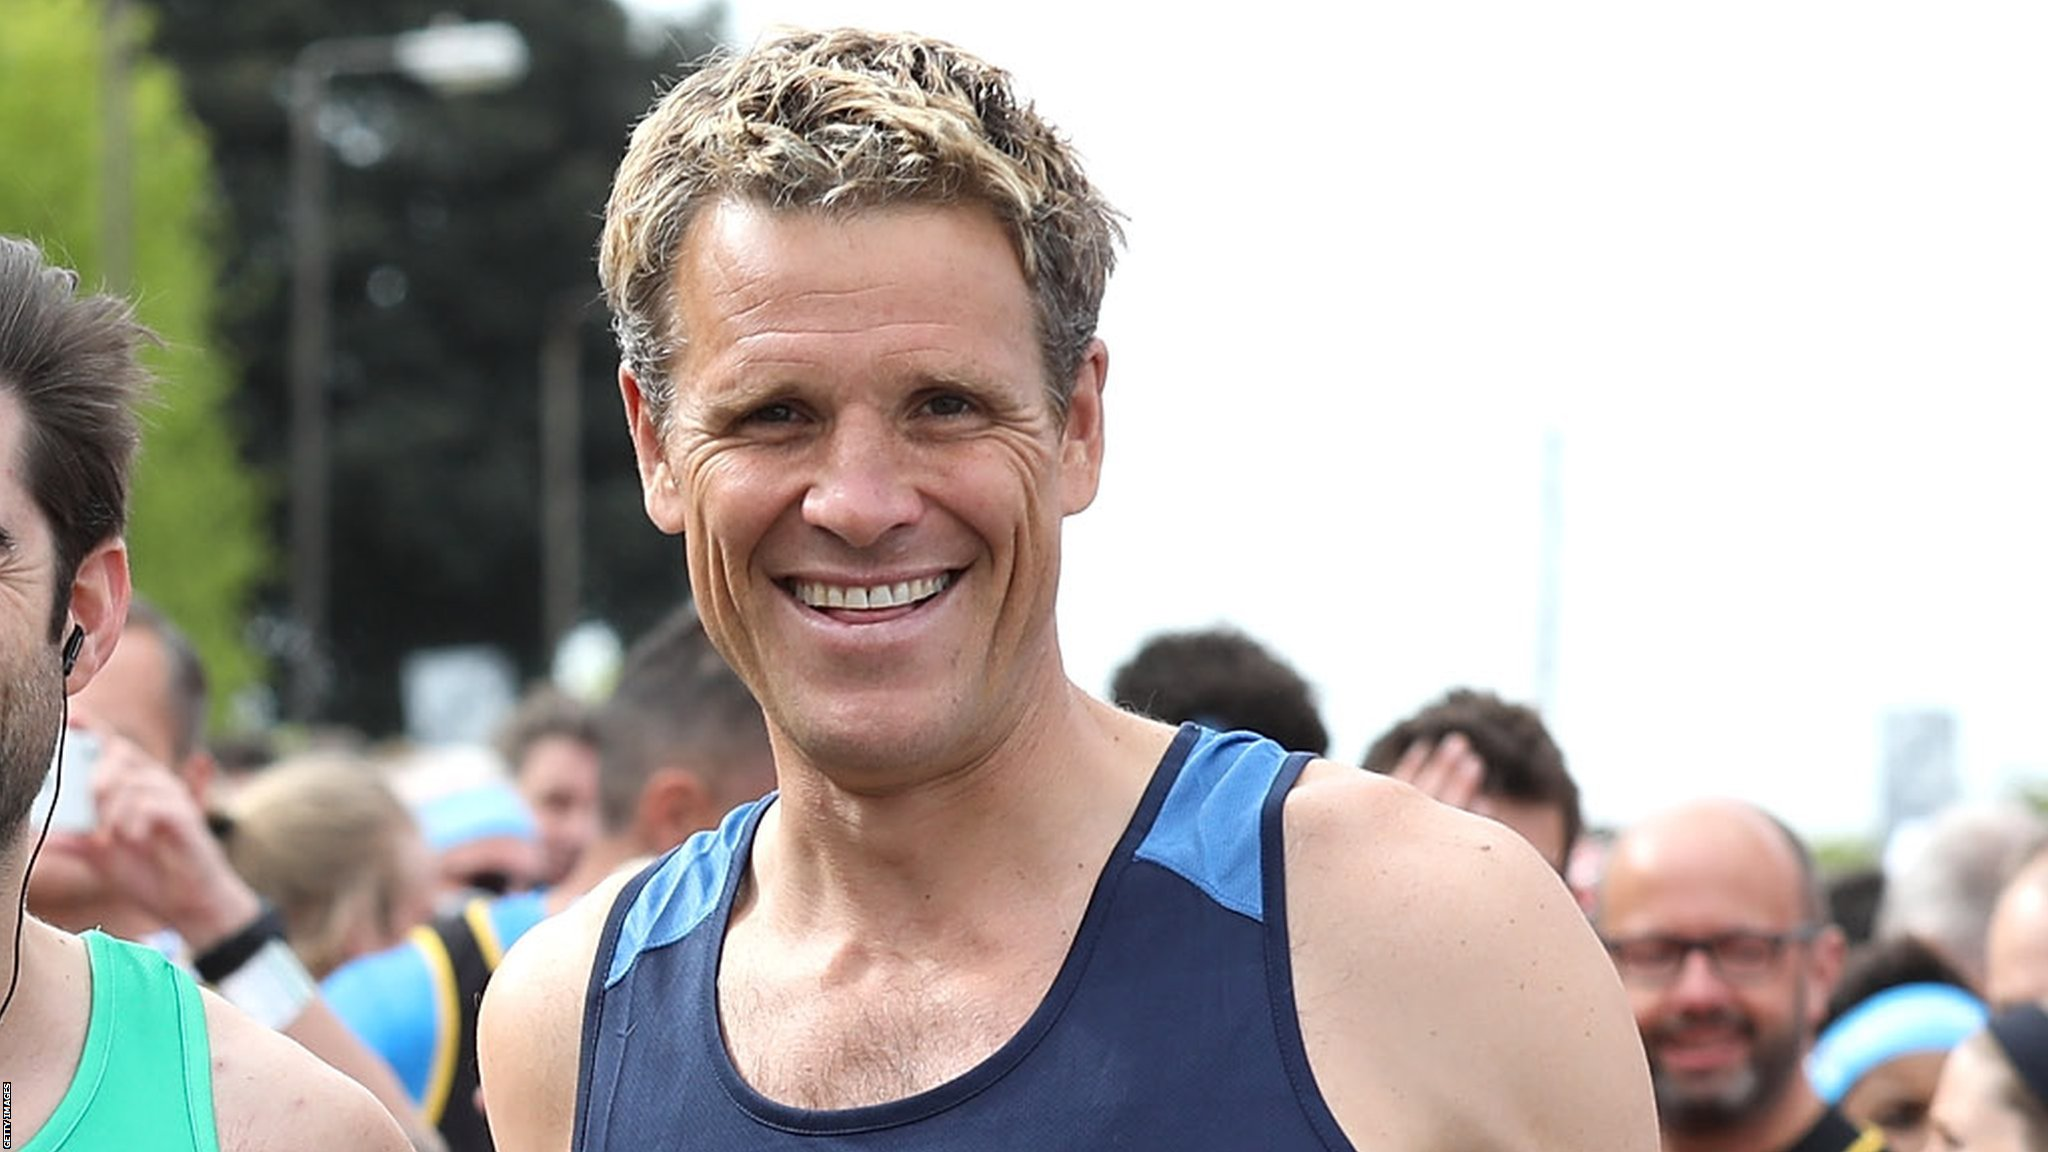 Boat Race: James Cracknell in Cambridge crew to face Oxford